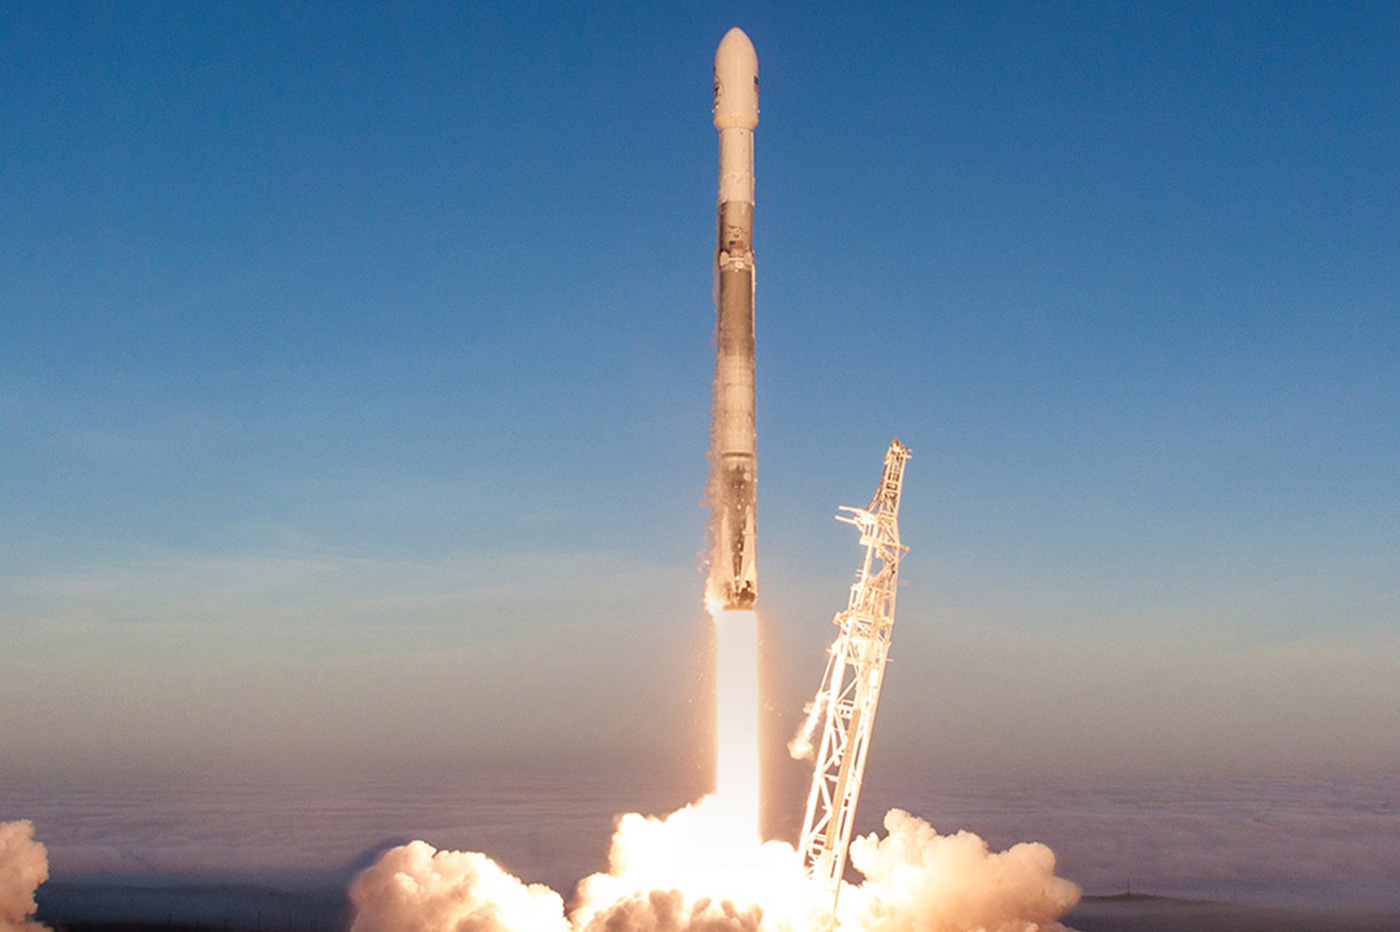 SpaceX Falcon 9